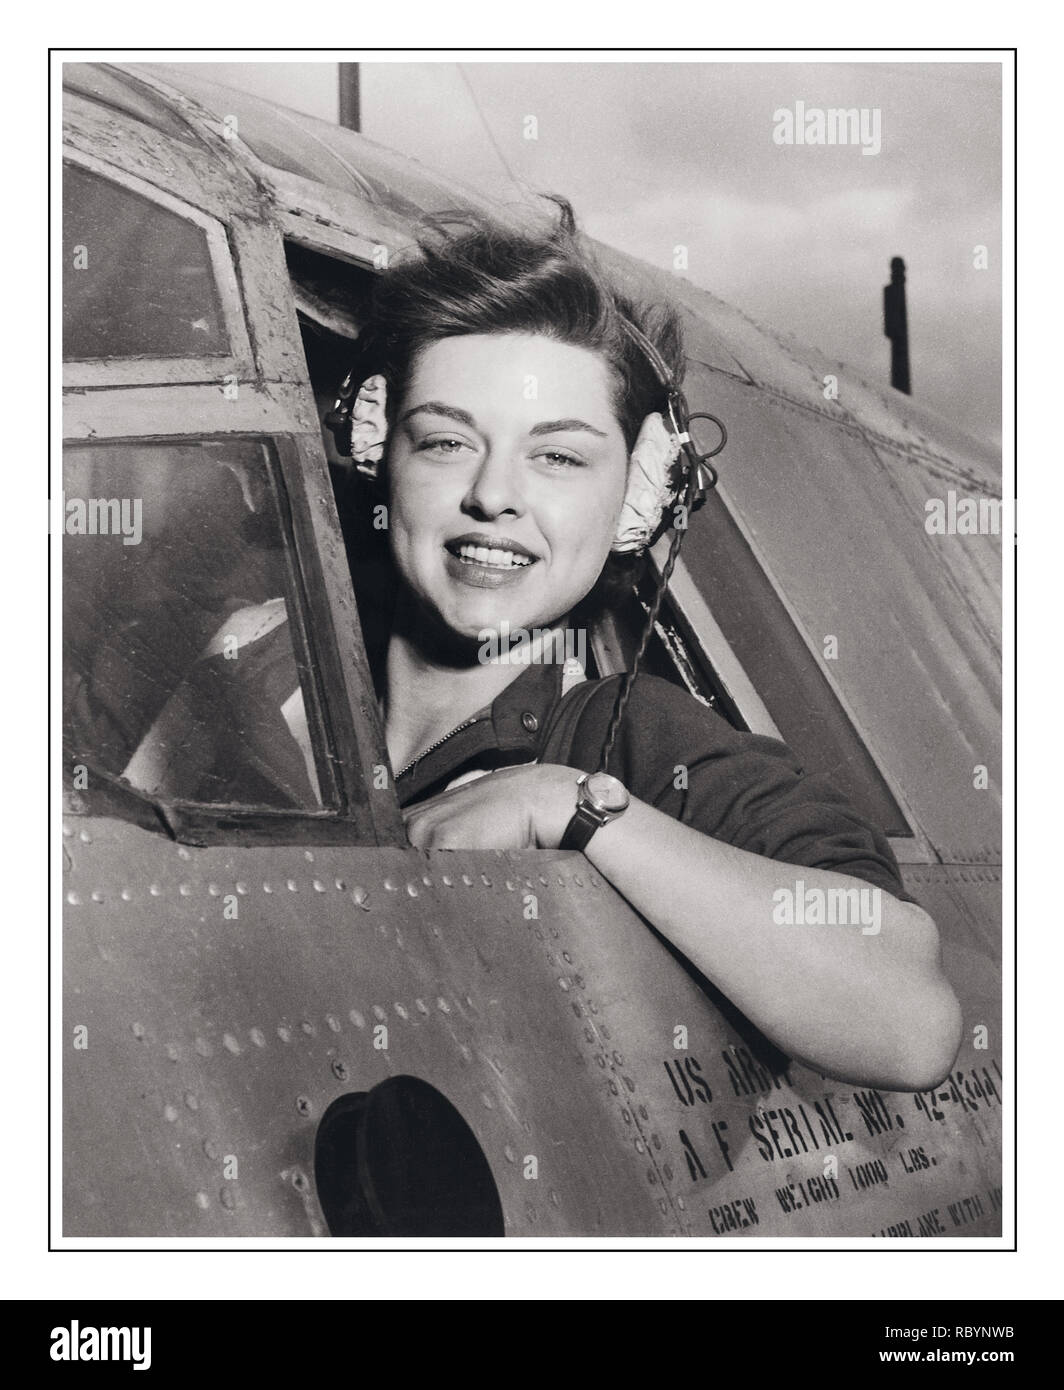 WOMENS AIRFORCE SERVICE PILOTS WW2 Harlingen Army Air Field, Texas--Elizabeth L. Remba Gardner of Rockford, Illinois, WASP (Women's Airforce Service Pilots), Class: 43-W-6, takes a look around before sending her plane streaking down the runway at the Harlingen Army Airfield, Texas, 1942–1944, part of project of having women pilots move aircraft on the home front to free up more male pilots for combat duty.  circa 1943 - Stock Image